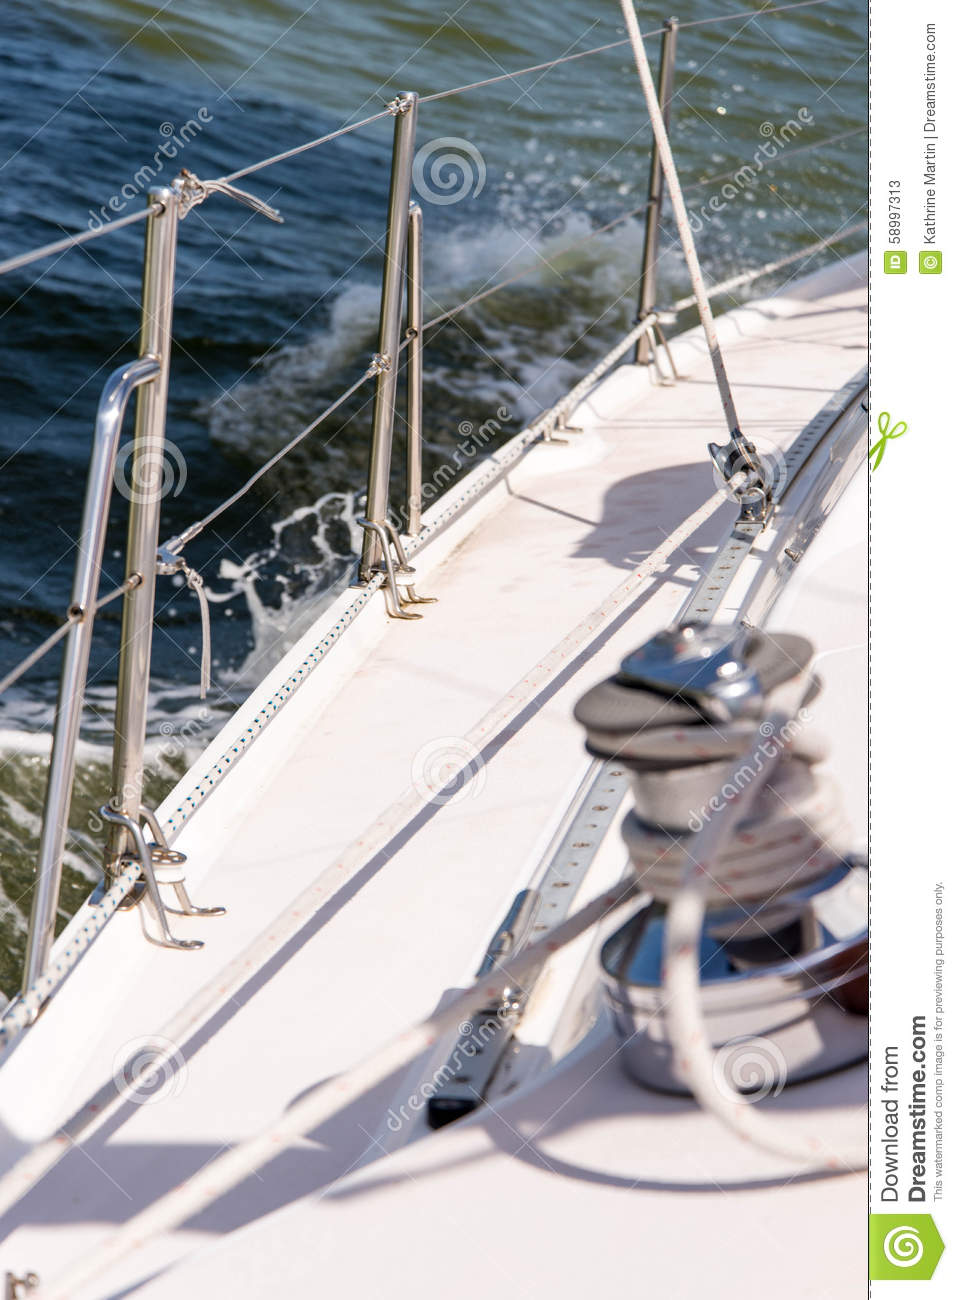 how to learn to sail a yacht in open ocean